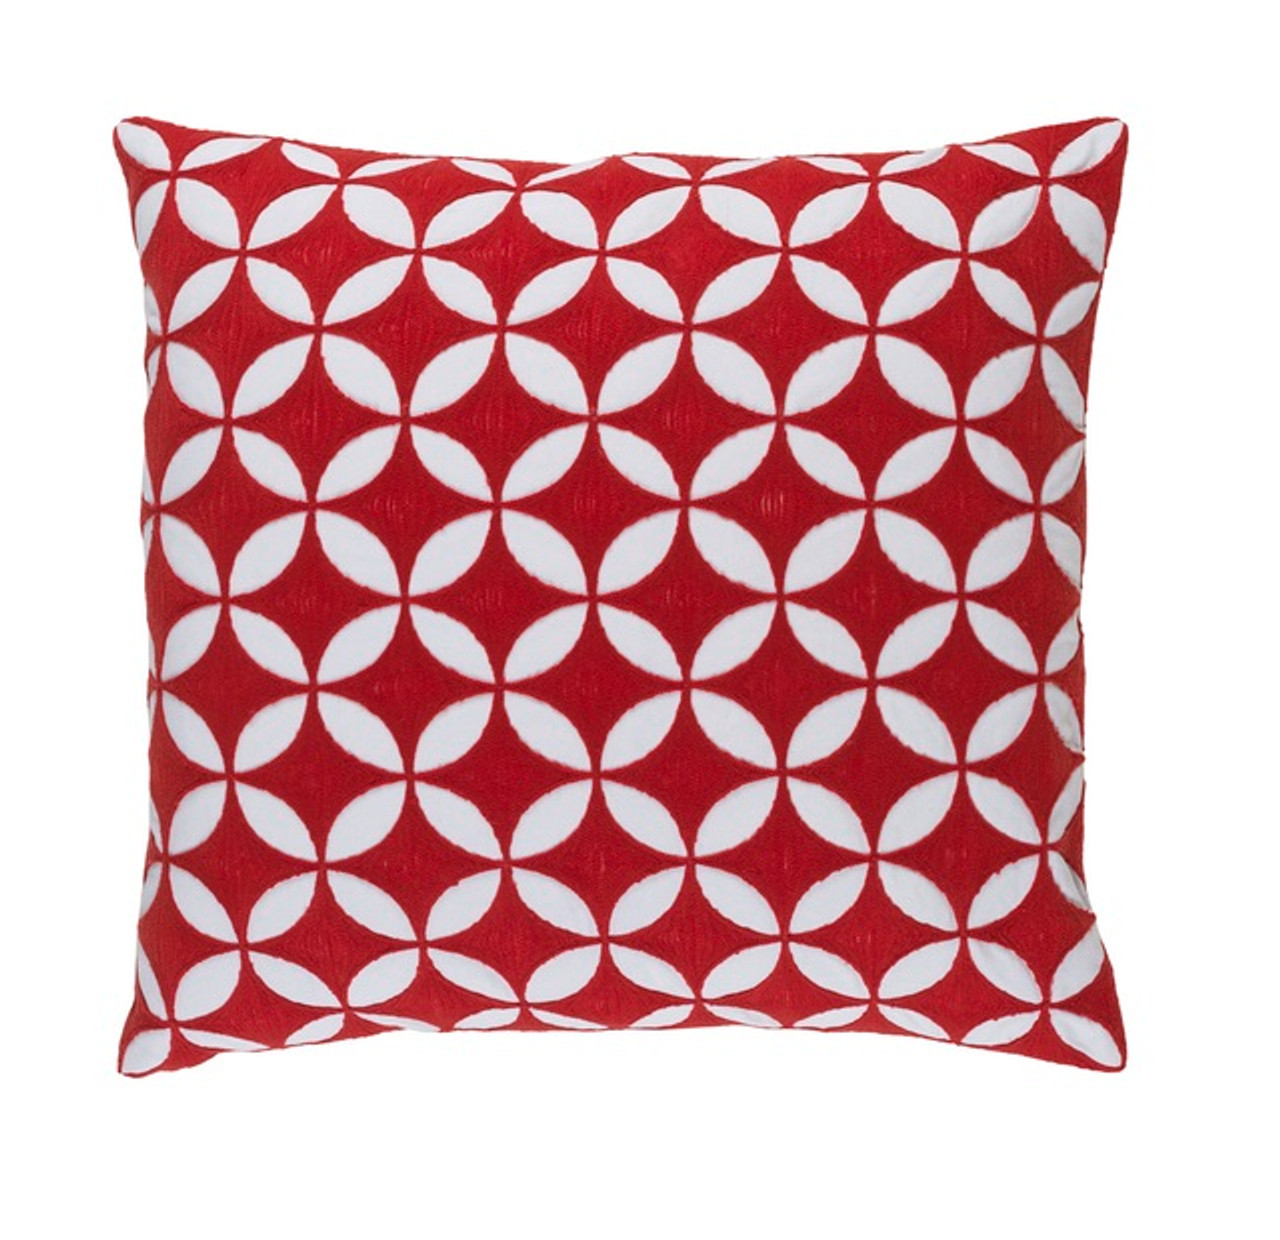 18 Red Velvet White Geometrical Woven Decorative Throw Pillow Poly Filled Christmas Central